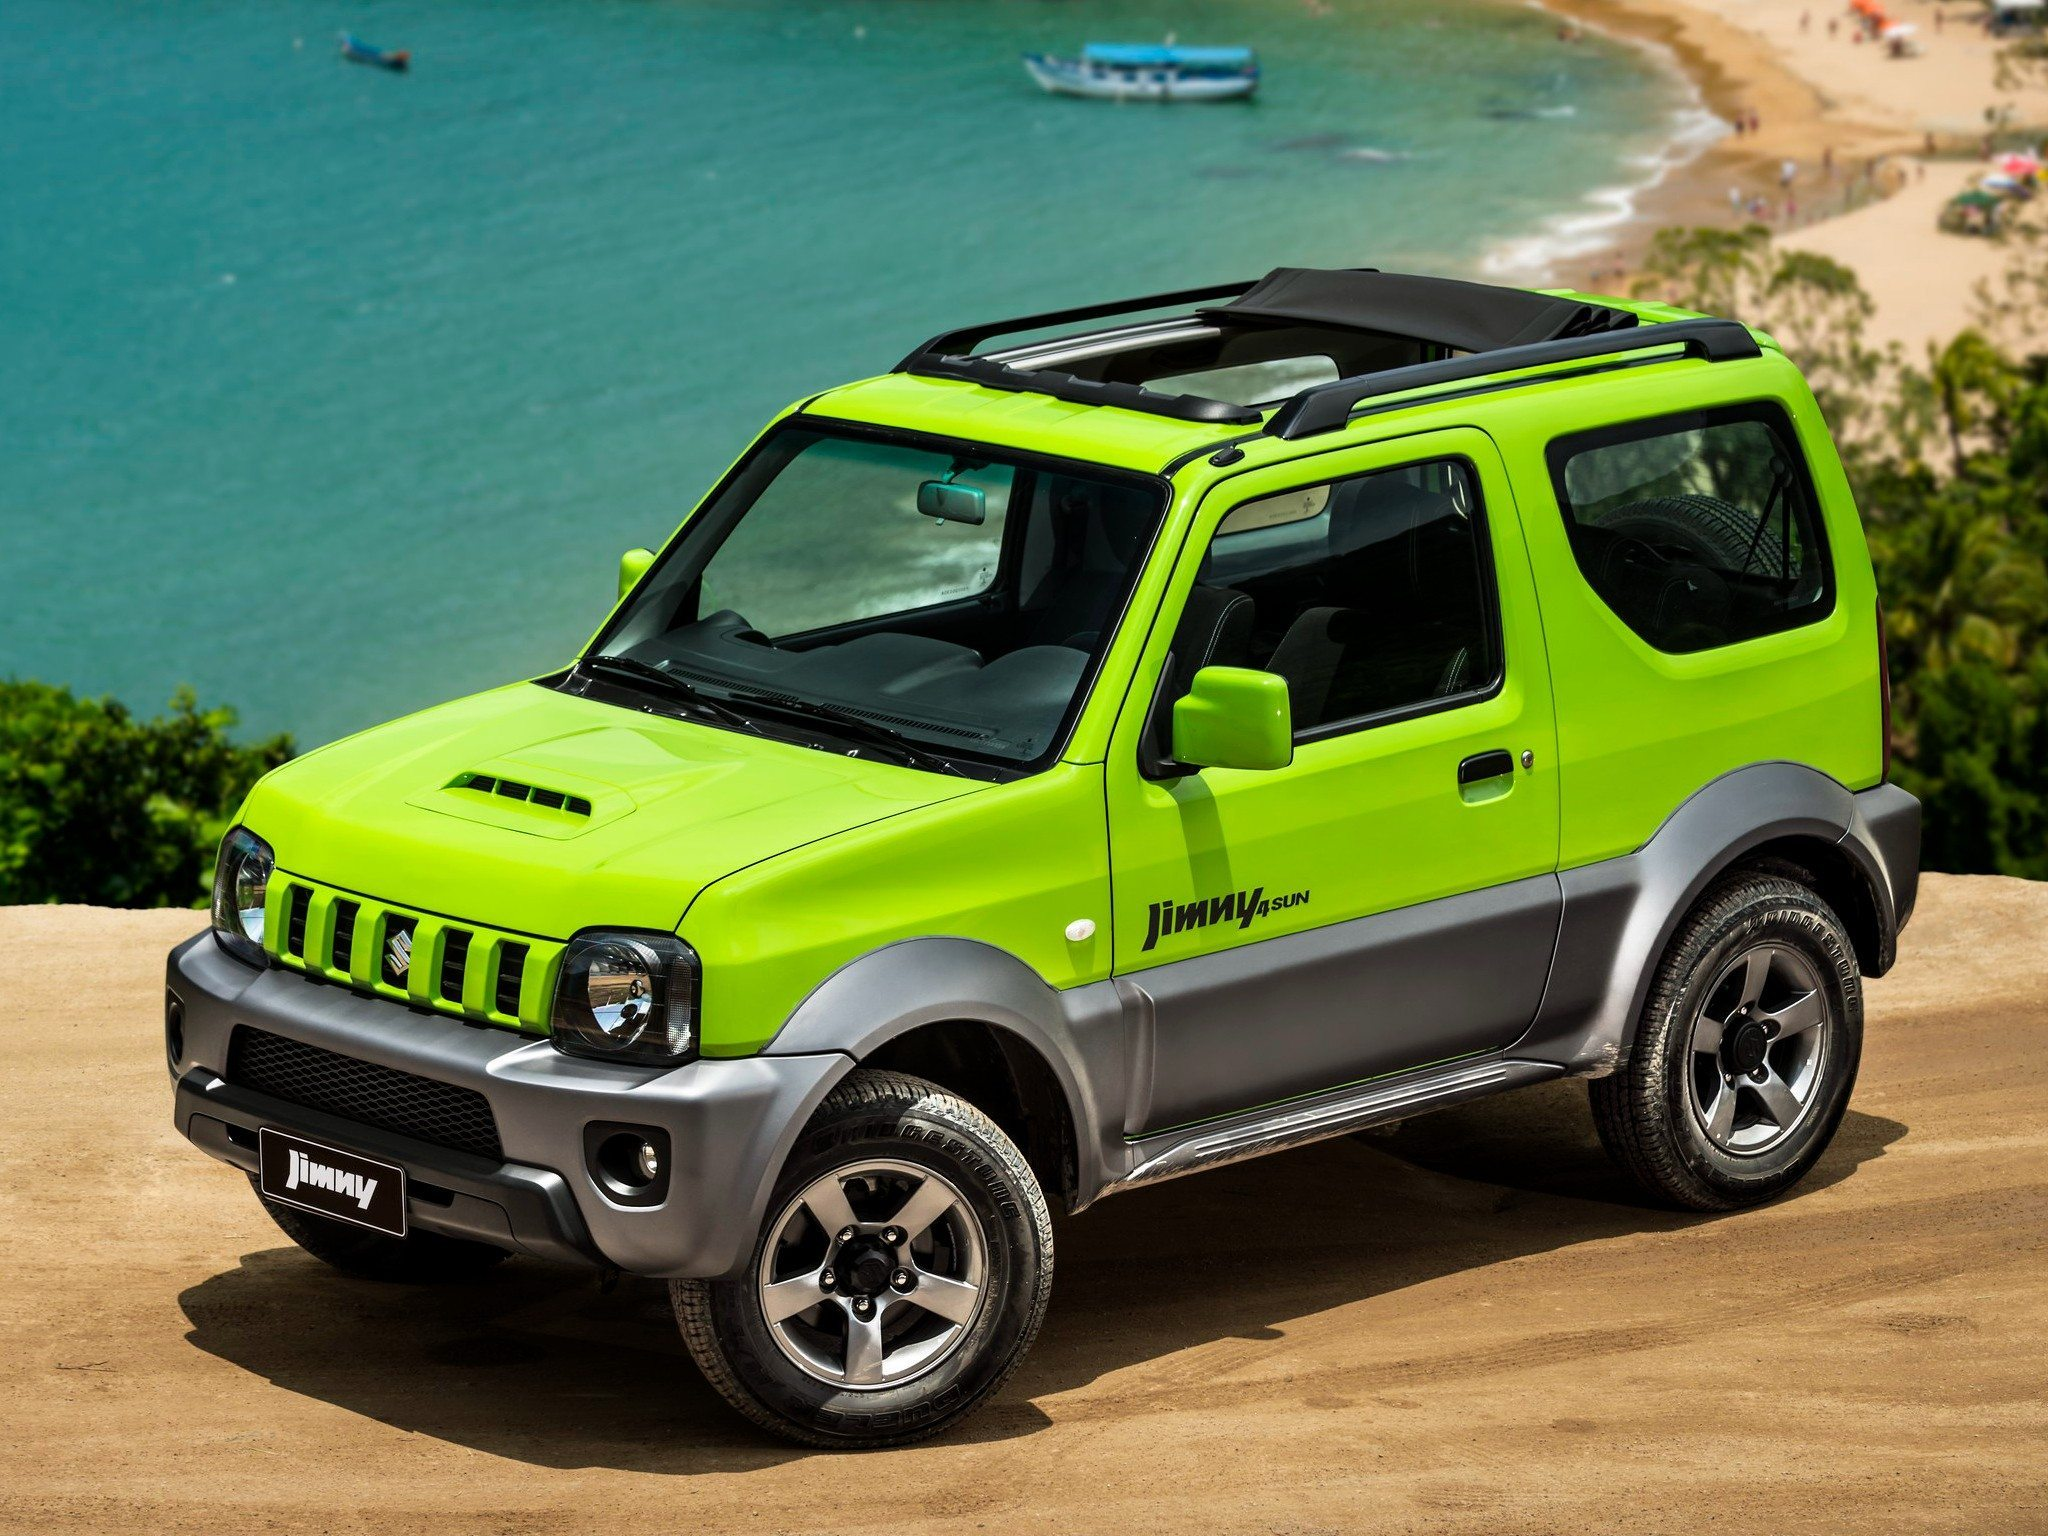 2017 suzuki jimny a t car 2017 suzuki jimny car price engine full technical specifications. Black Bedroom Furniture Sets. Home Design Ideas